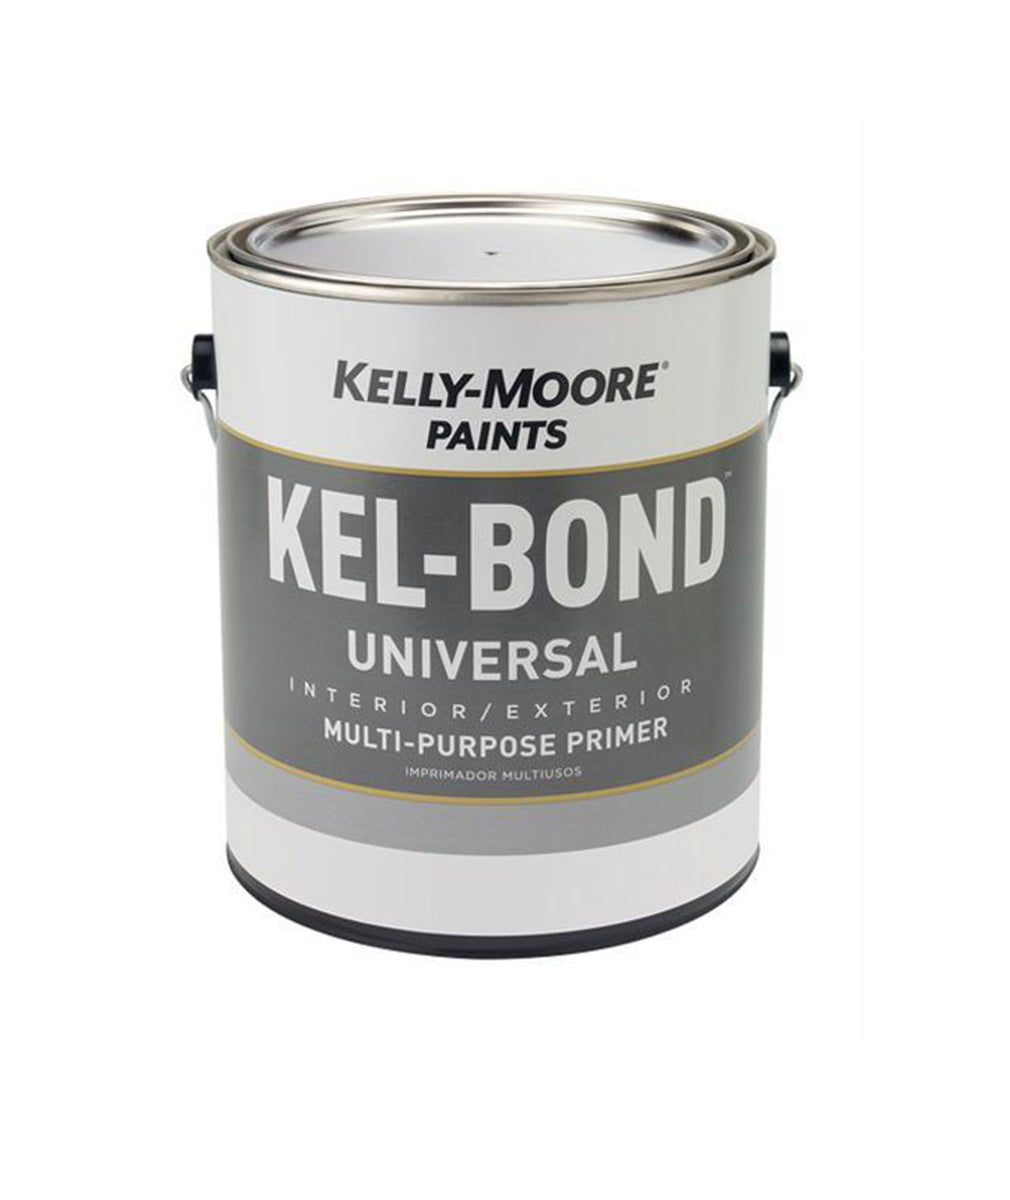 Kelly-Moore Paints Kel-Bond Universal Primer, available at Kelly-Moore Paints for Contractors.